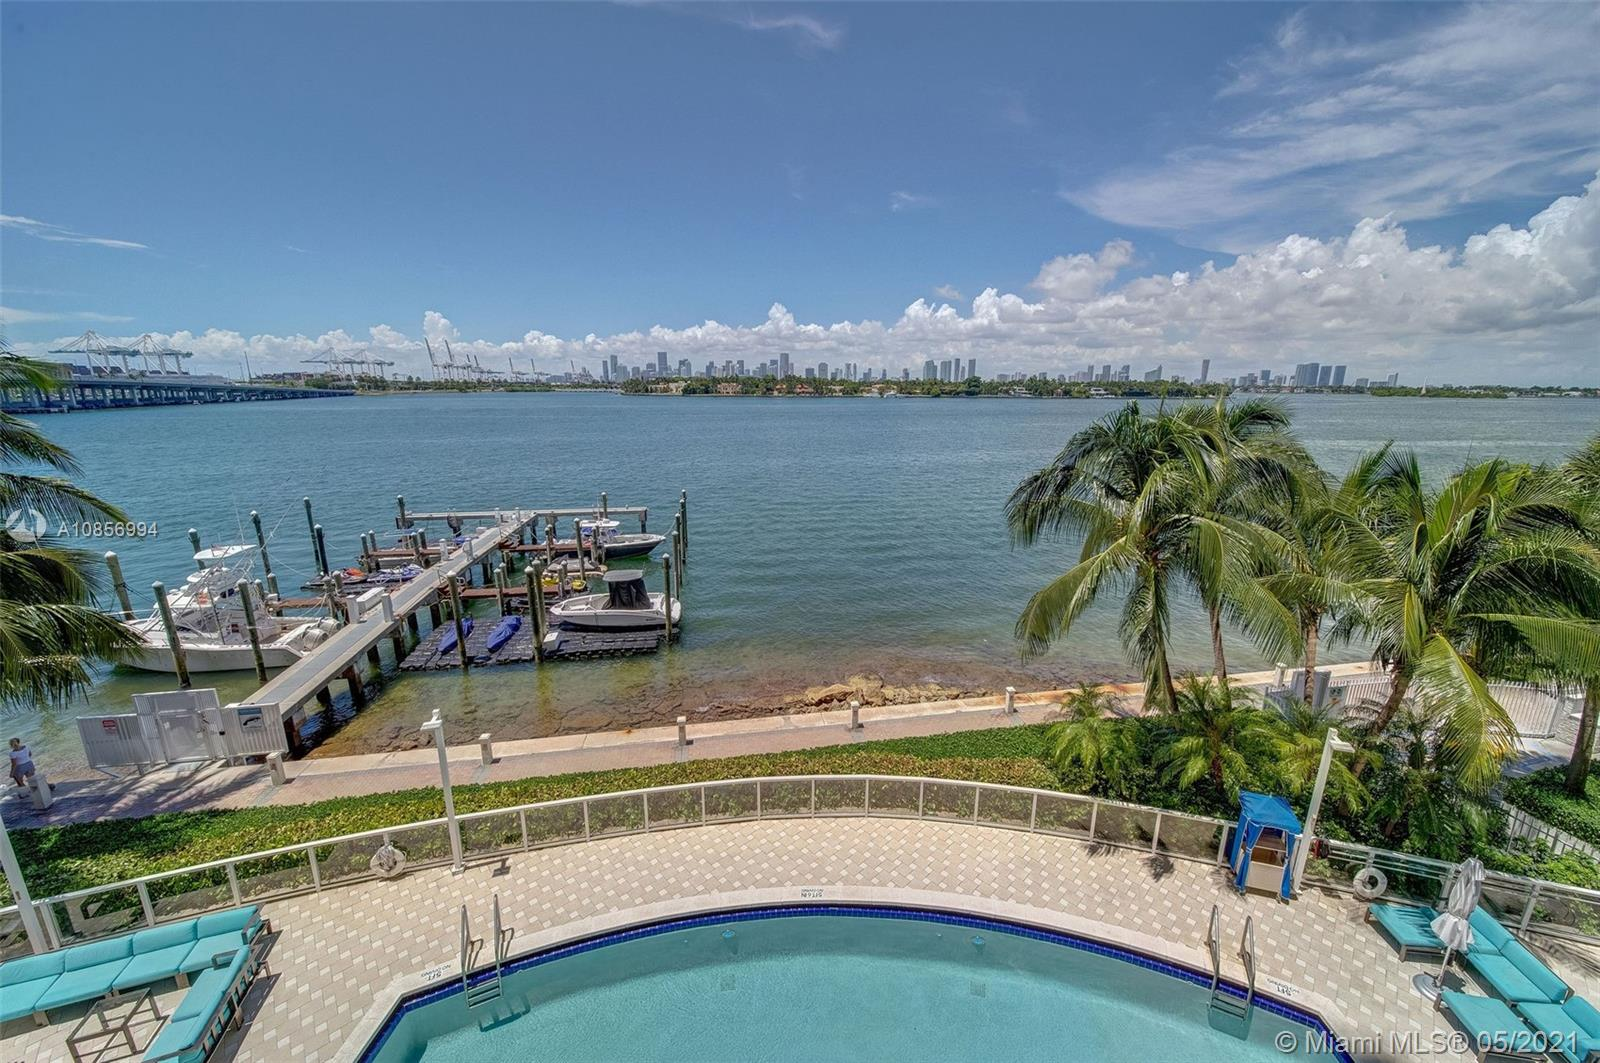 Enjoy stunning views of Biscayne Bay and Downtown Miami from this large 1 bedroom condo. This unit features an open layout with kitchen bar open to living/dining room combo.  Tons of closet space with a walk-in and additional closet in the bedroom plus another closet in the hall.  Bathroom can be accessed from hall or master bedroom.  Washer and dryer in the unit.  One assigned spot in the garage on the first level.  The Floridian is a luxurious full amenity building with 2 bay front pools, a gym and spa, concierge, a gourmet market, salon, security and complimentary valet for guests.